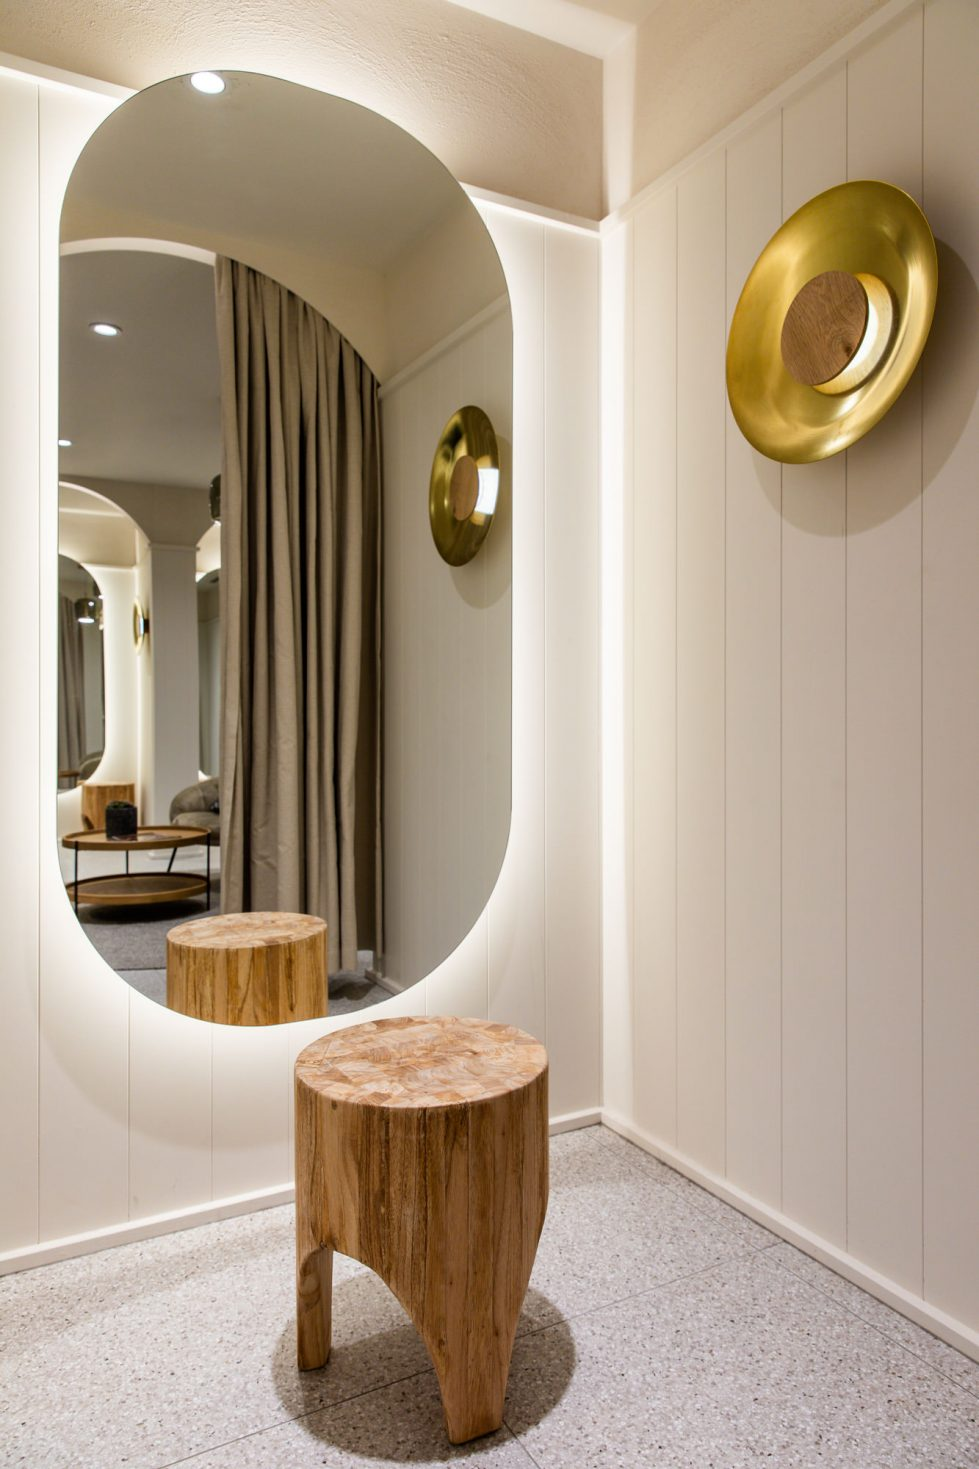 amazing backlighted mirror in a cosy and welcoming fitting room with terrazzo flooring, brass lighting and timber panelling on the walls. Interior design by design clarity